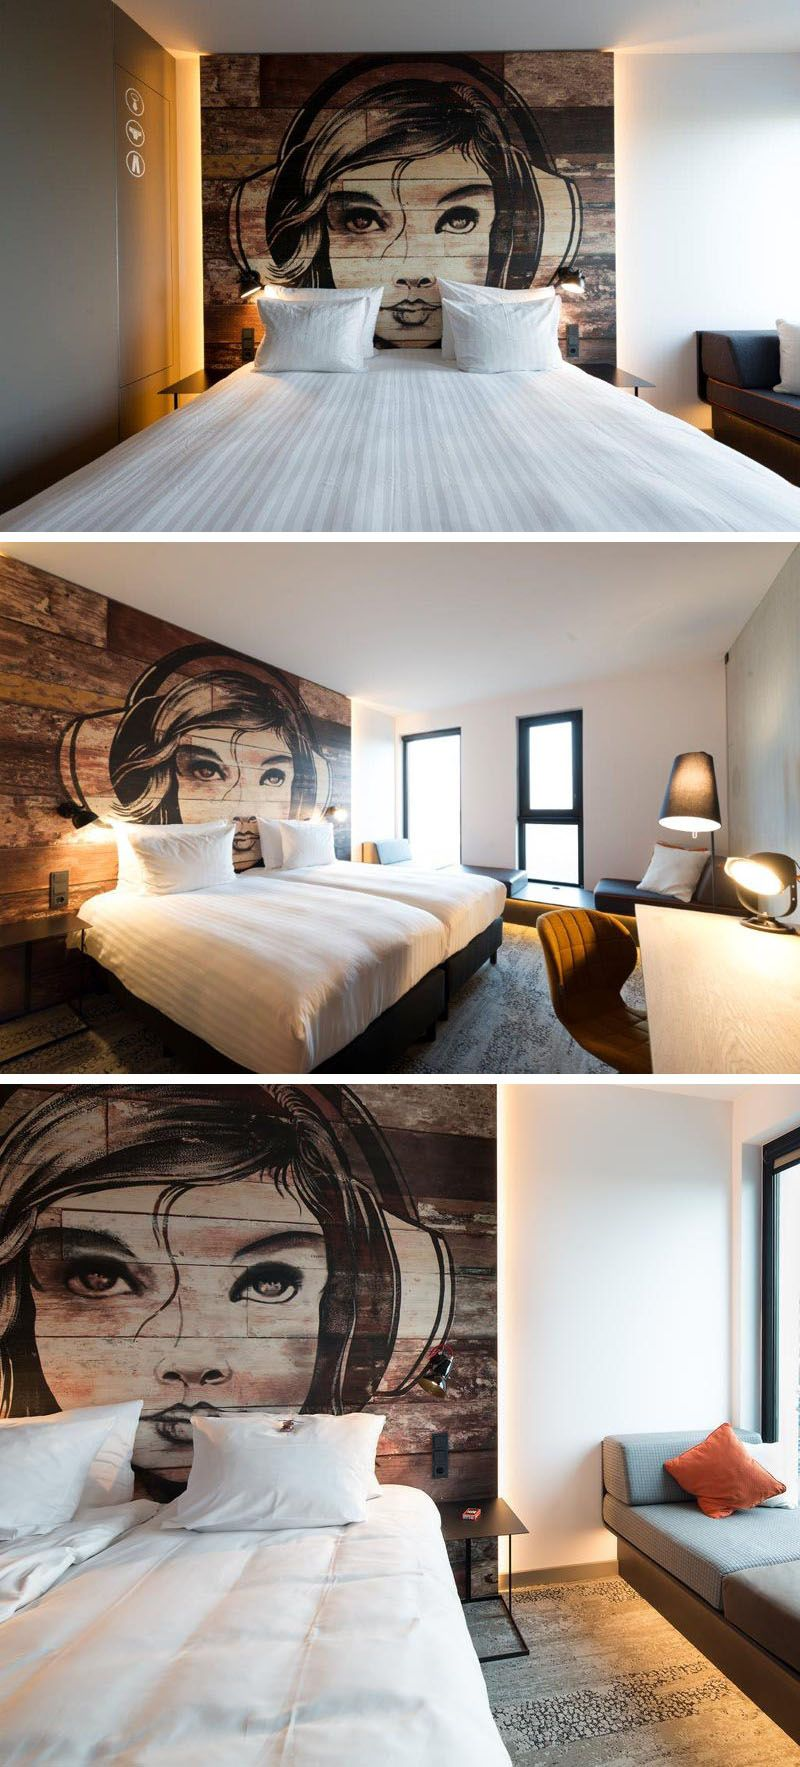 Modern Bedroom Headboard Designs Headboard Design Idea Mural Painted On Wood Photo On Wood